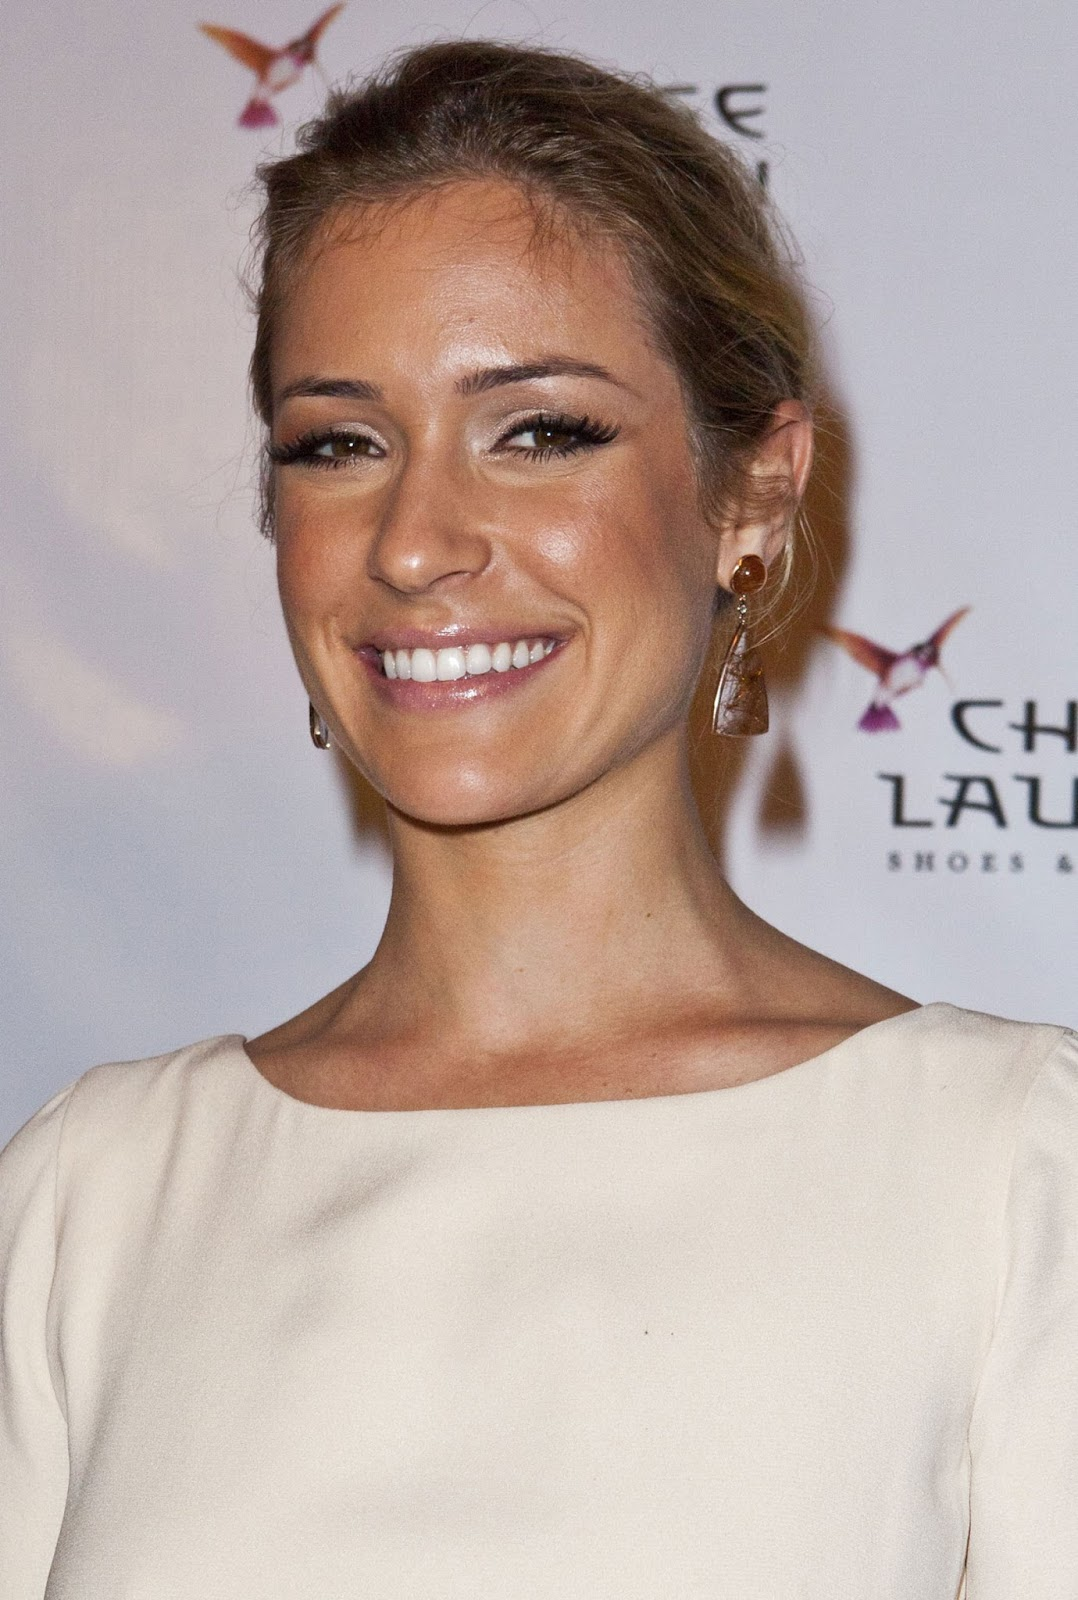 Full HQ Photos of TV Personality and Model Kristin Cavallari at Chinese Laundry